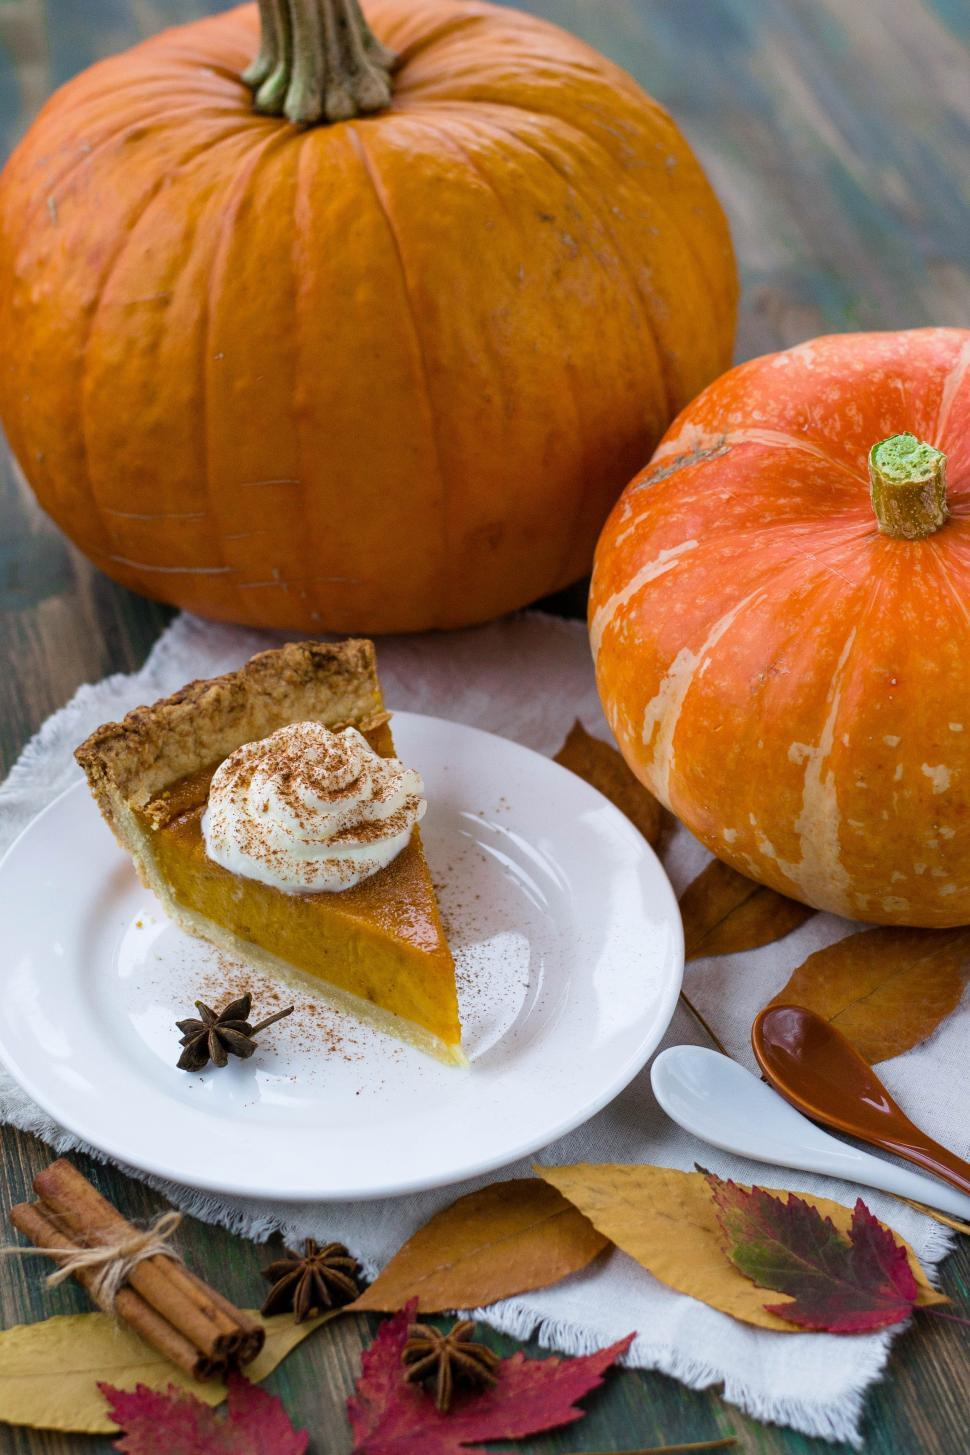 Download Free Stock HD Photo of Close up of a slice of pumpkin pie on white plate Online